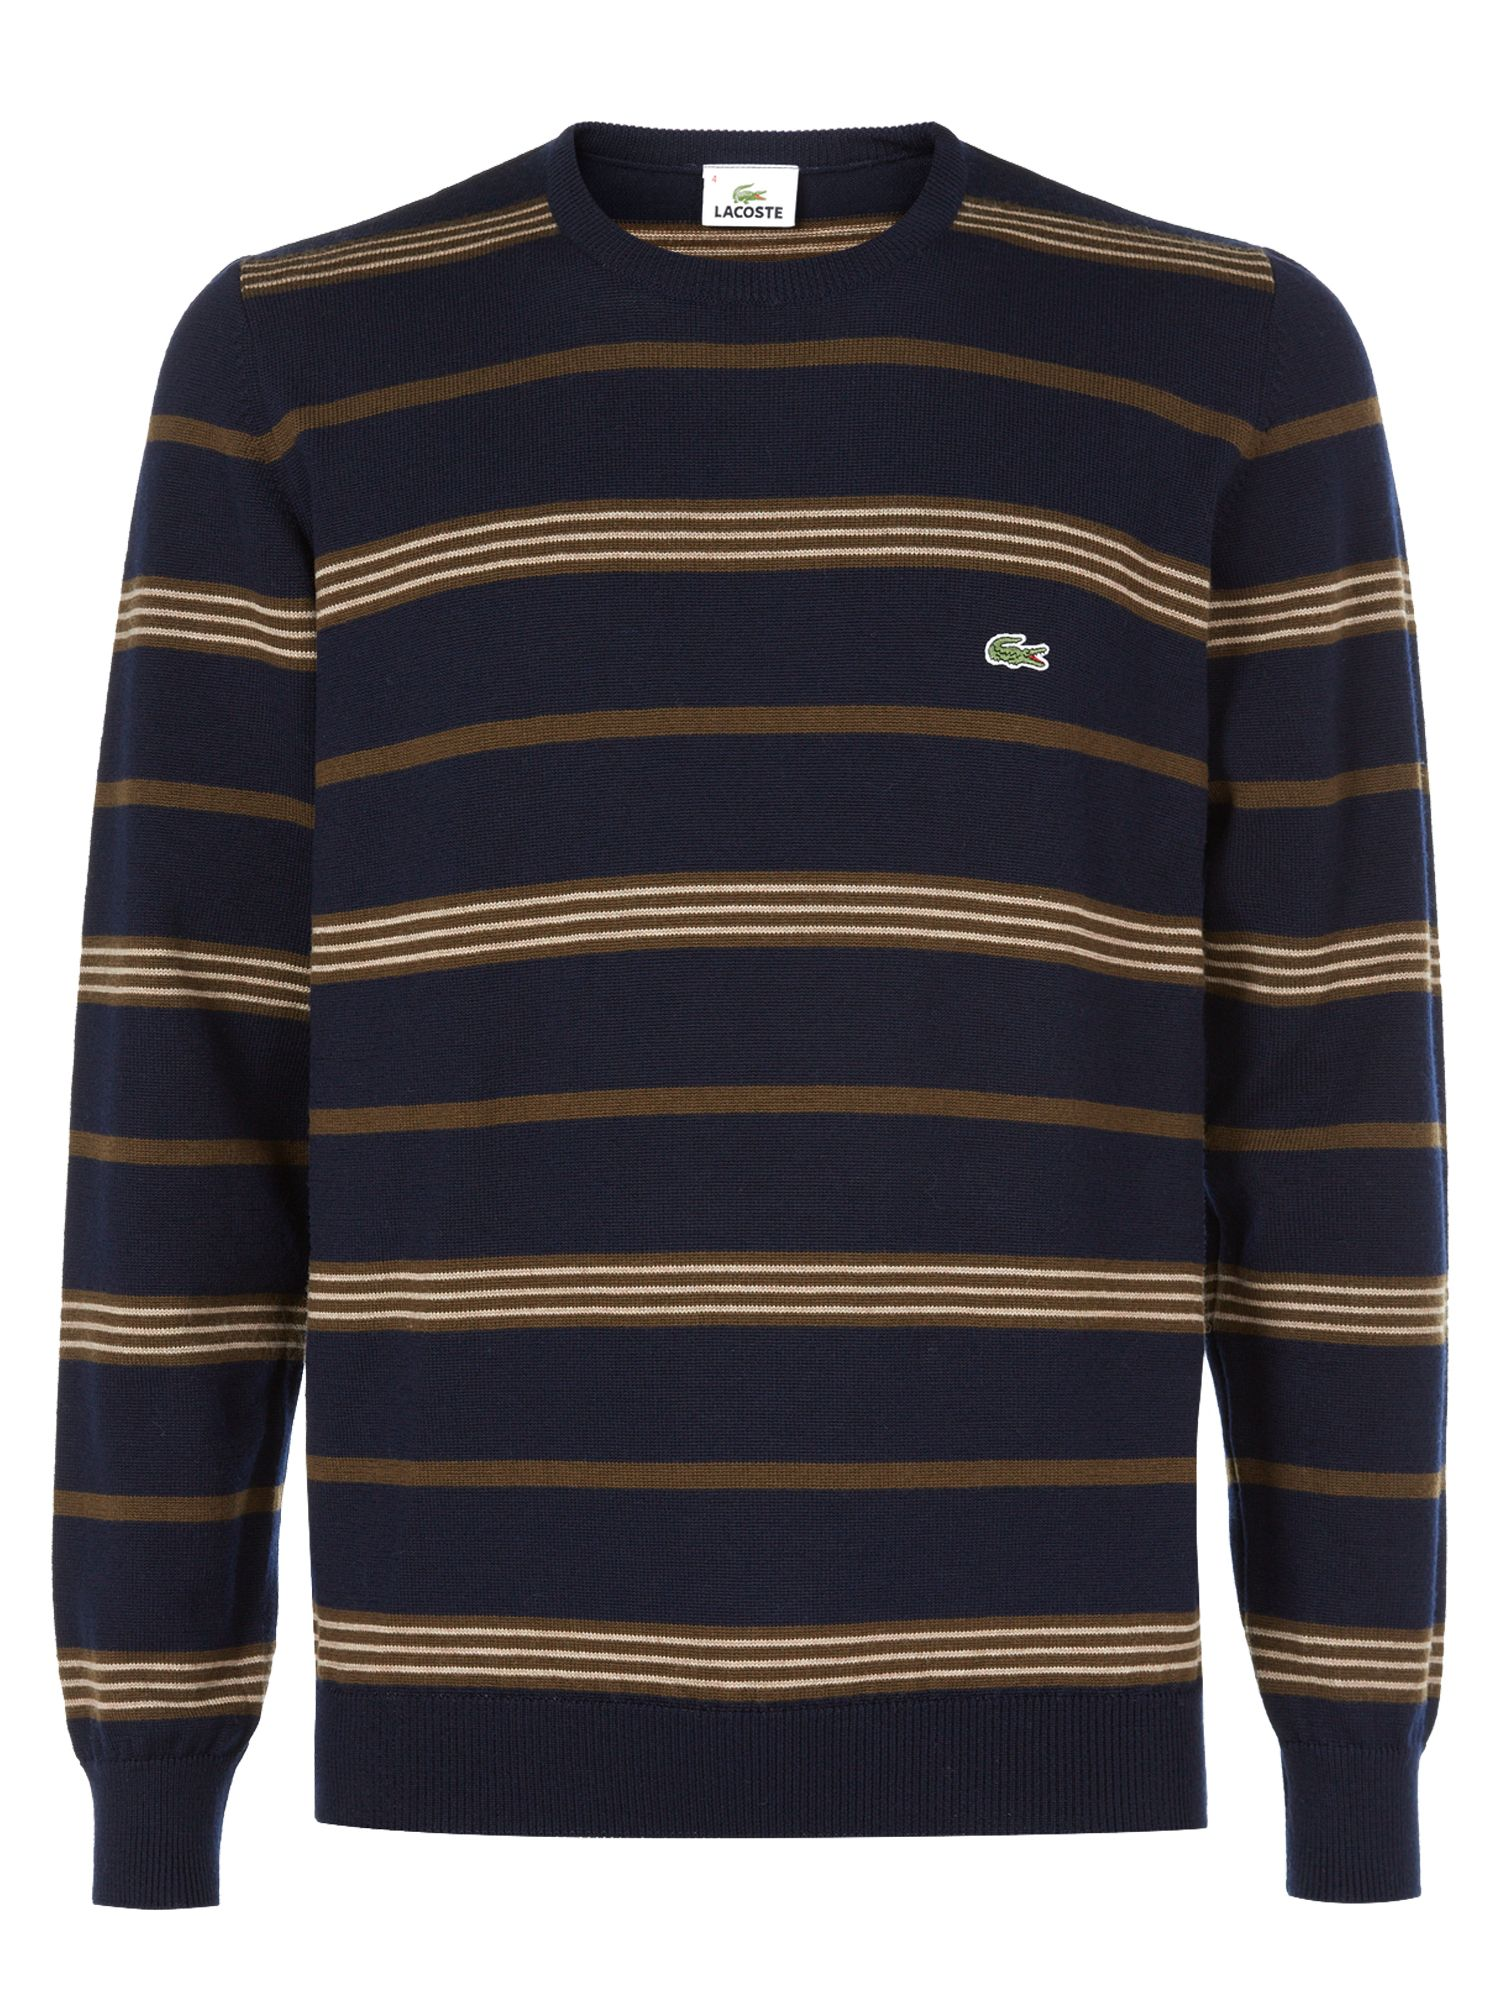 Men's Lacoste Round neck lambswool sweater, Navy